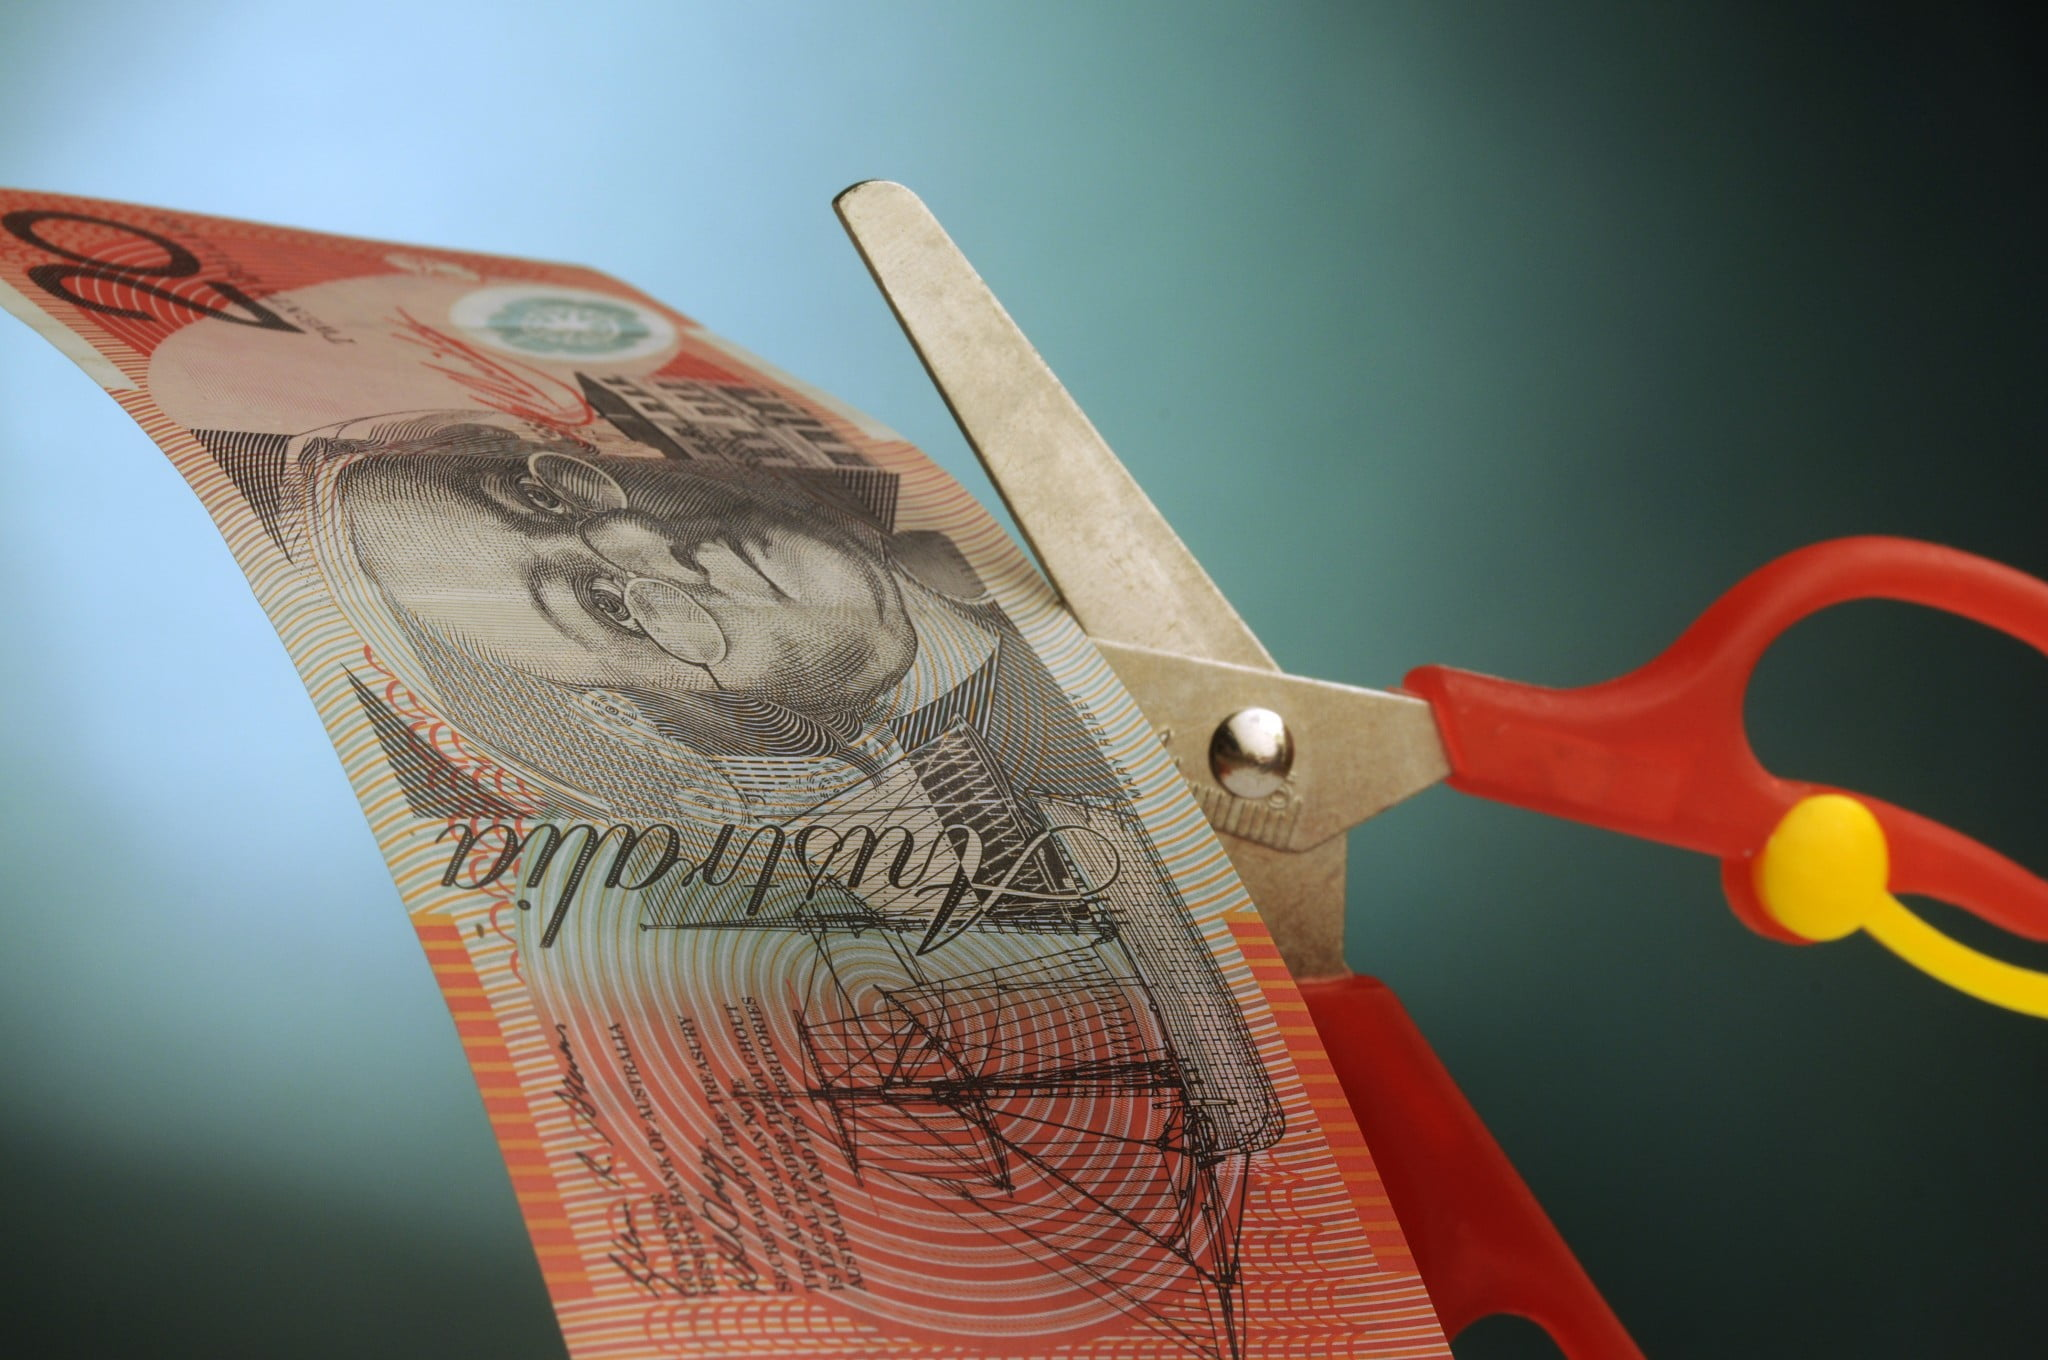 PBS cuts: scissors snipping $20 note